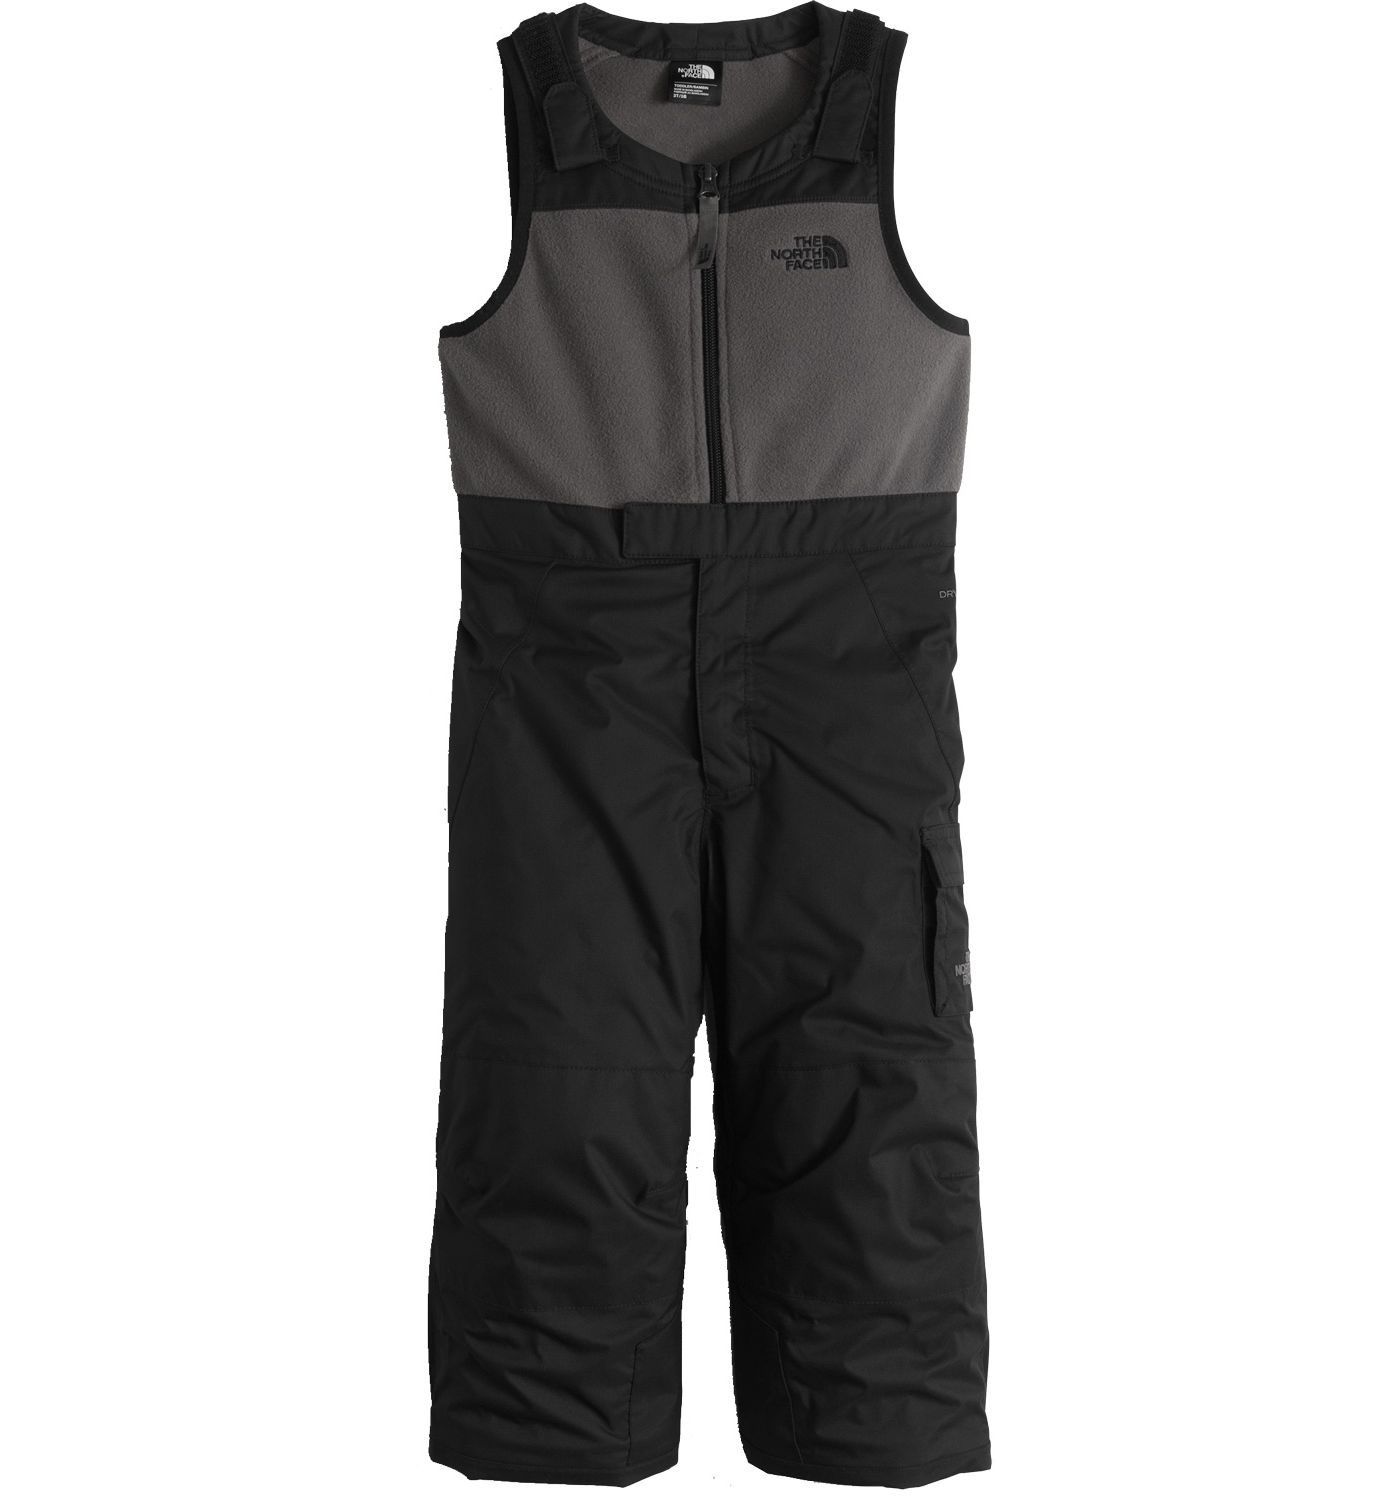 The North Face Toddler Boys' Insulated Bib